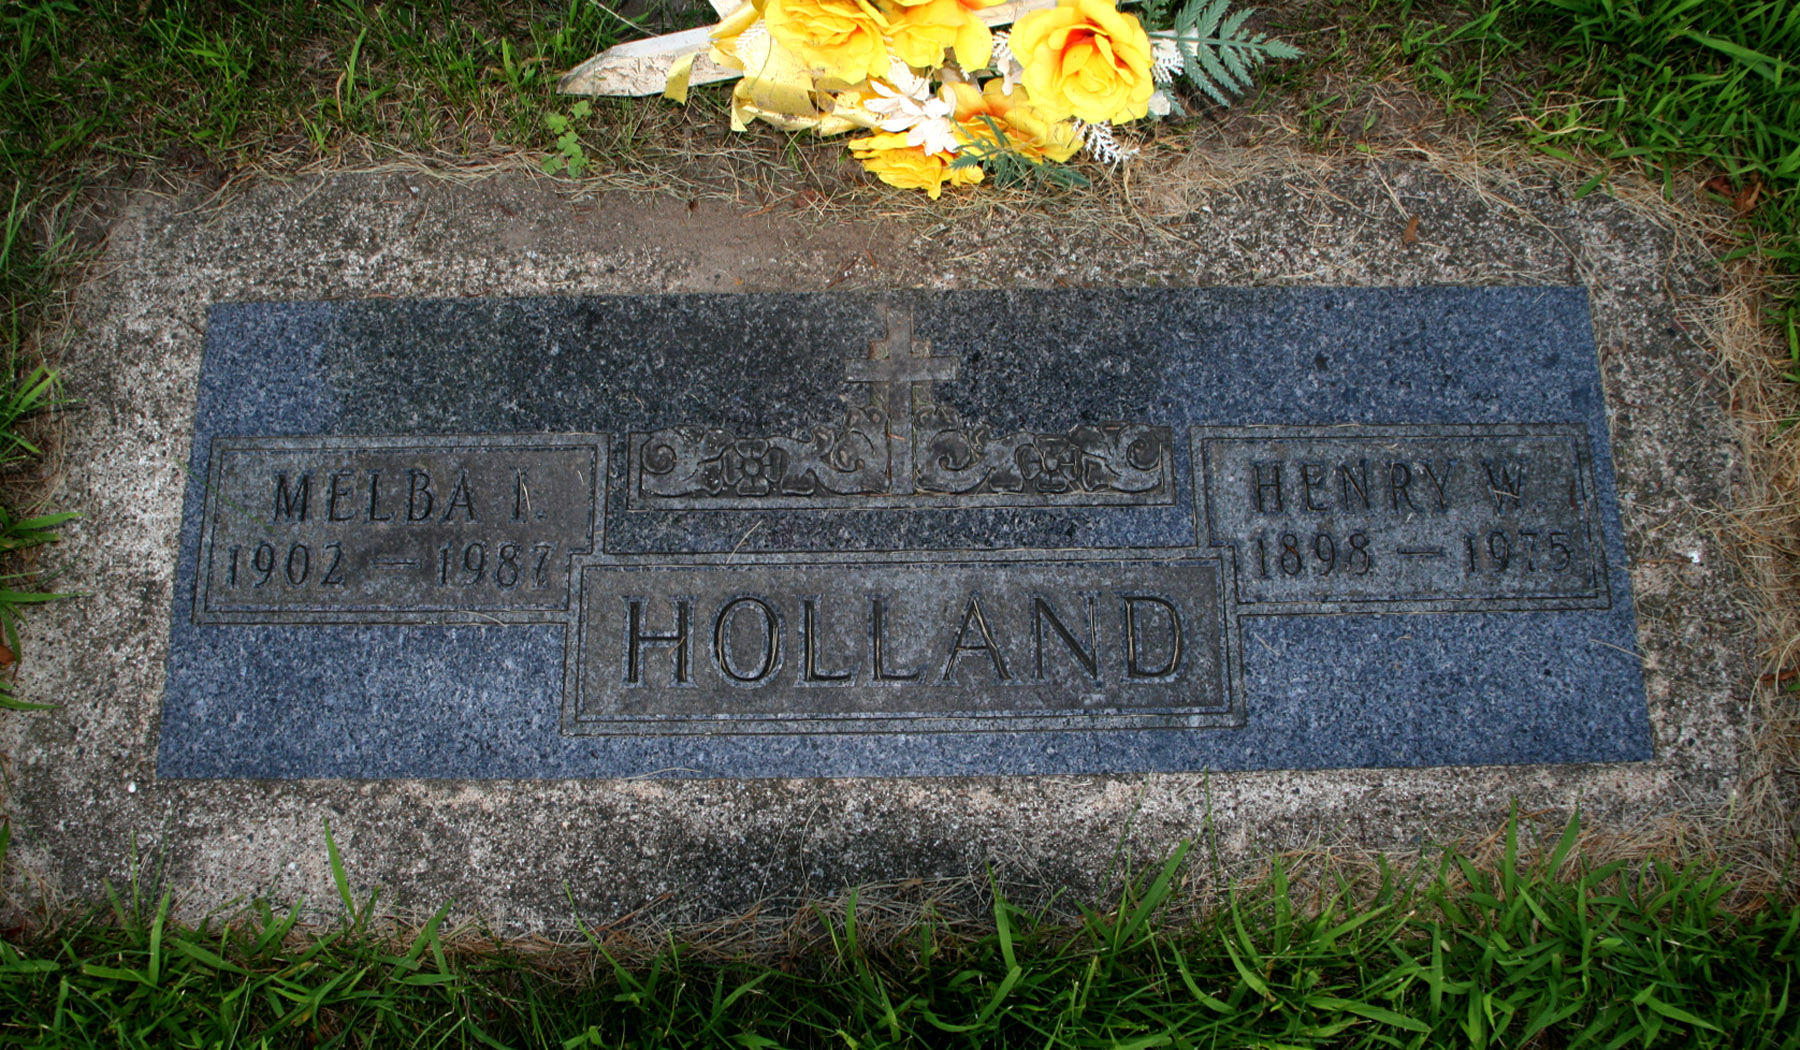 William Henry Holland